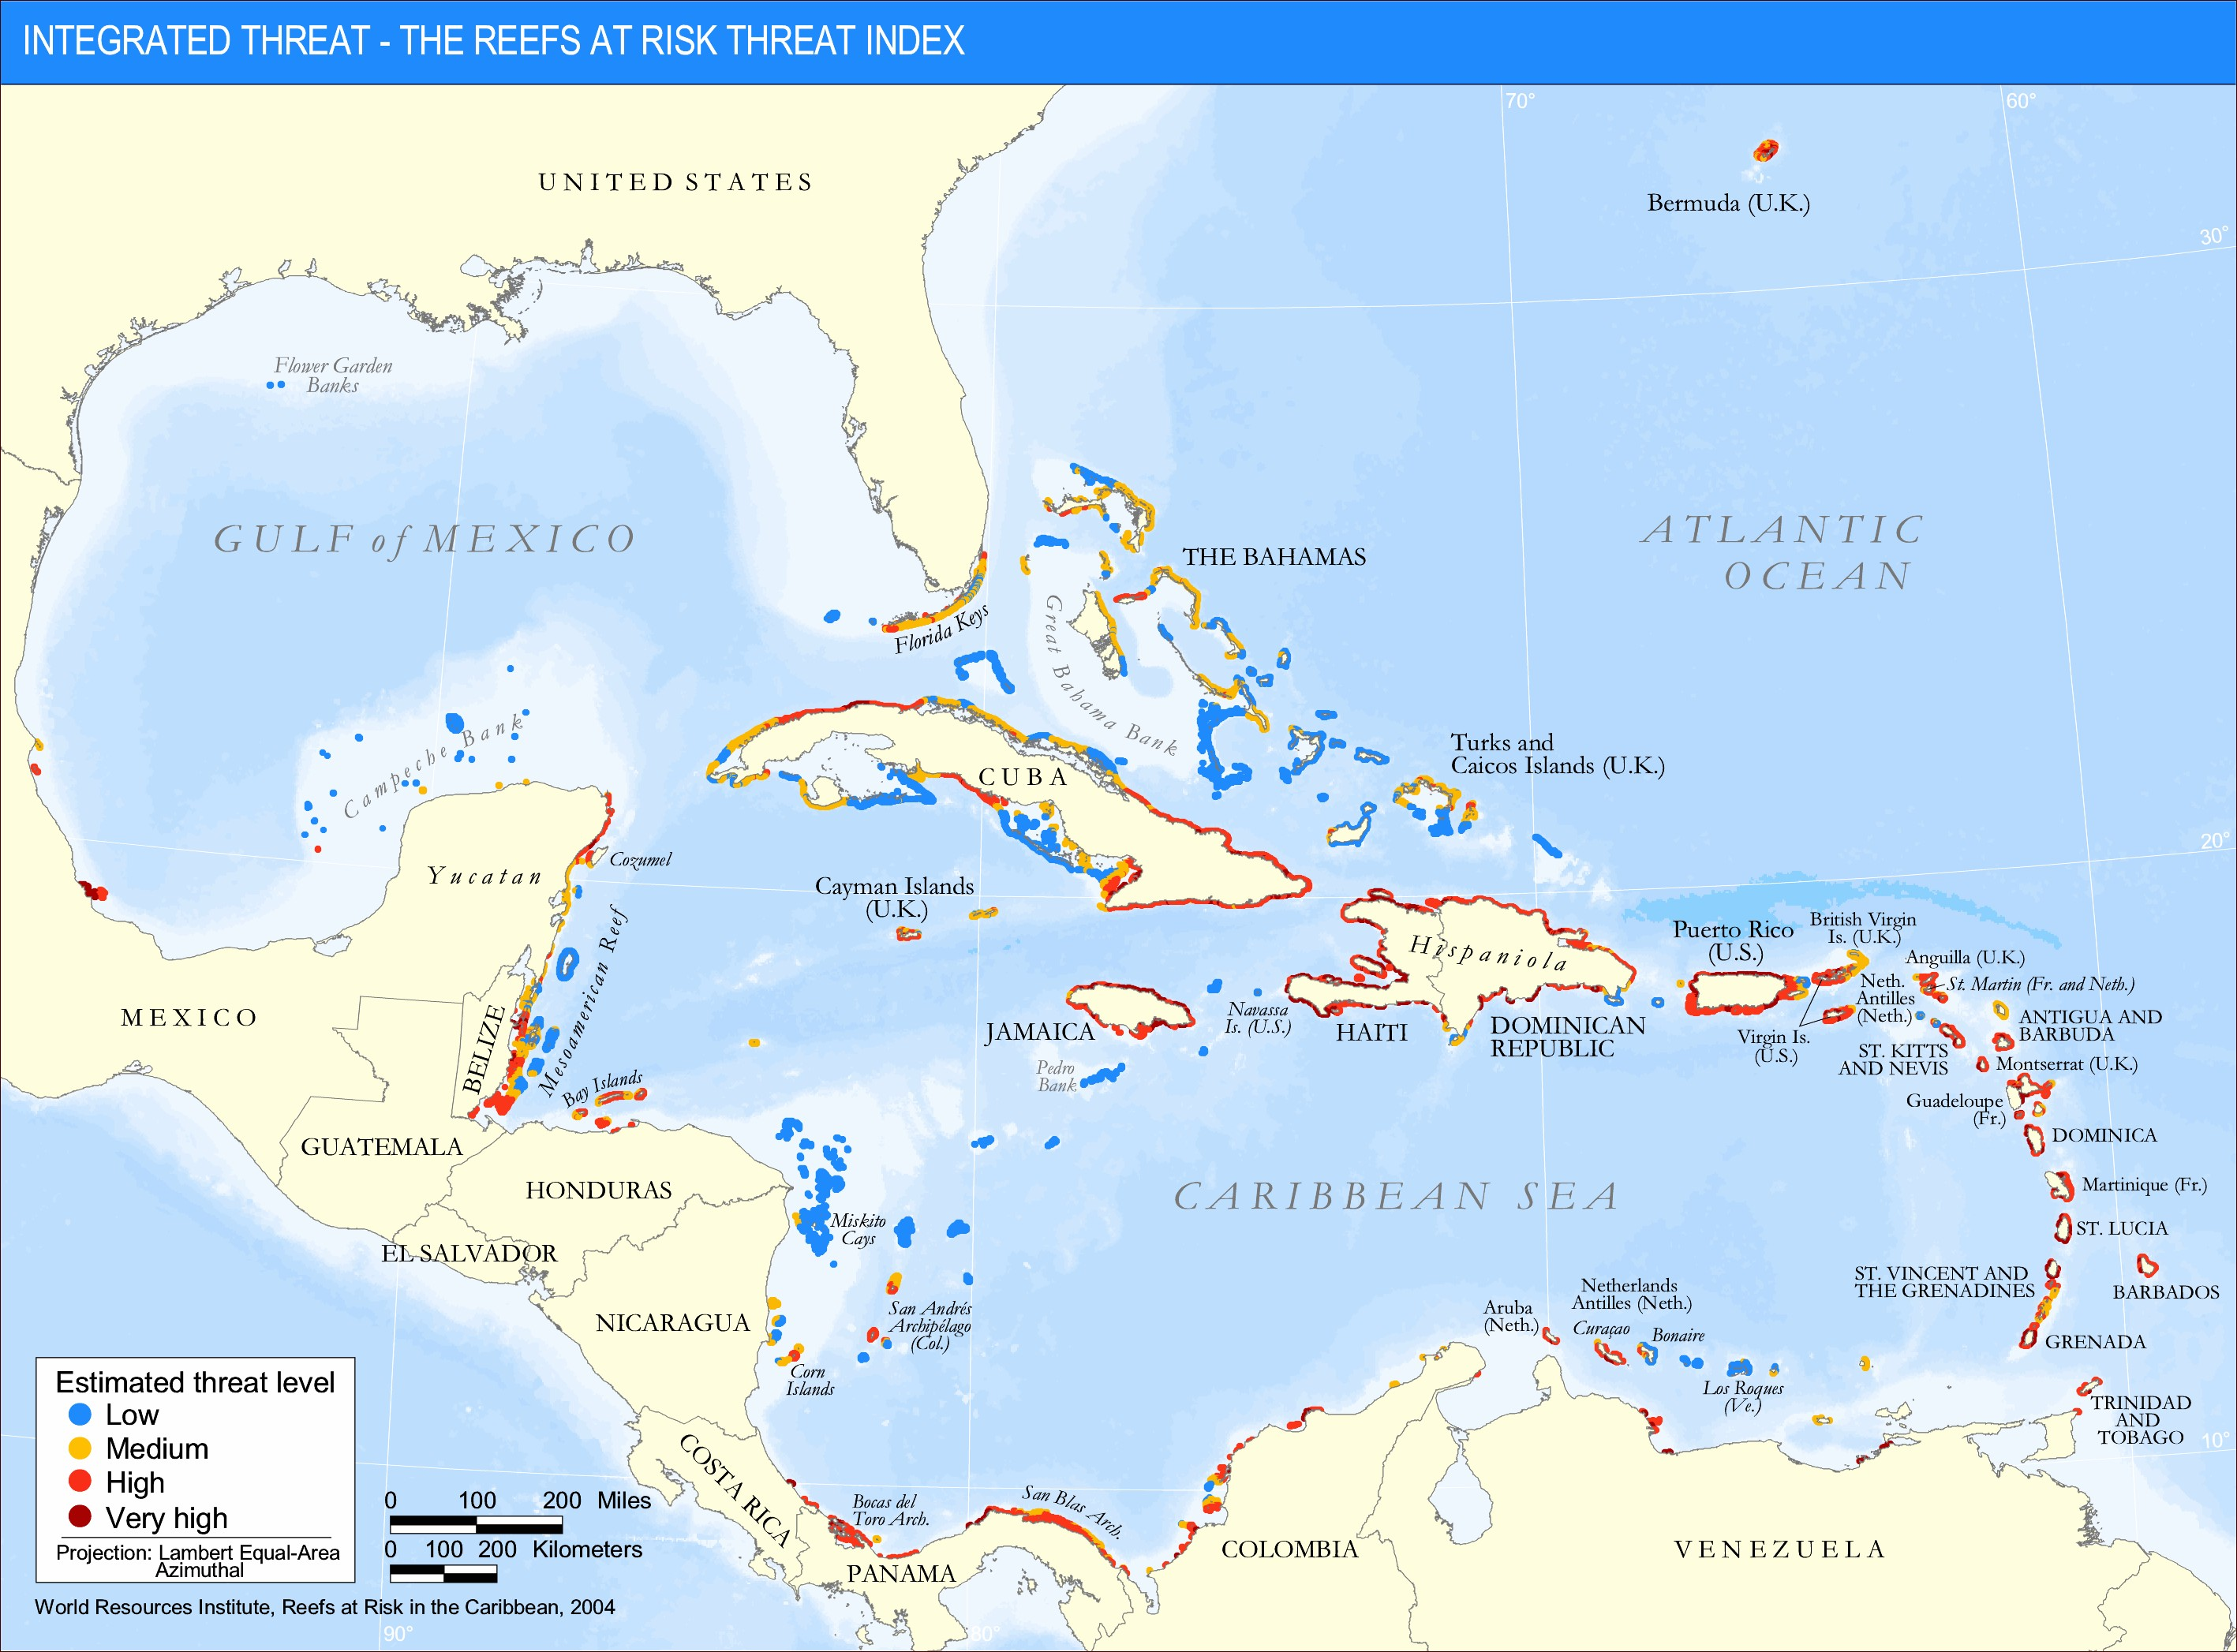 <p>Integrated Threat: The Reefs at Risk Threat Index</p>